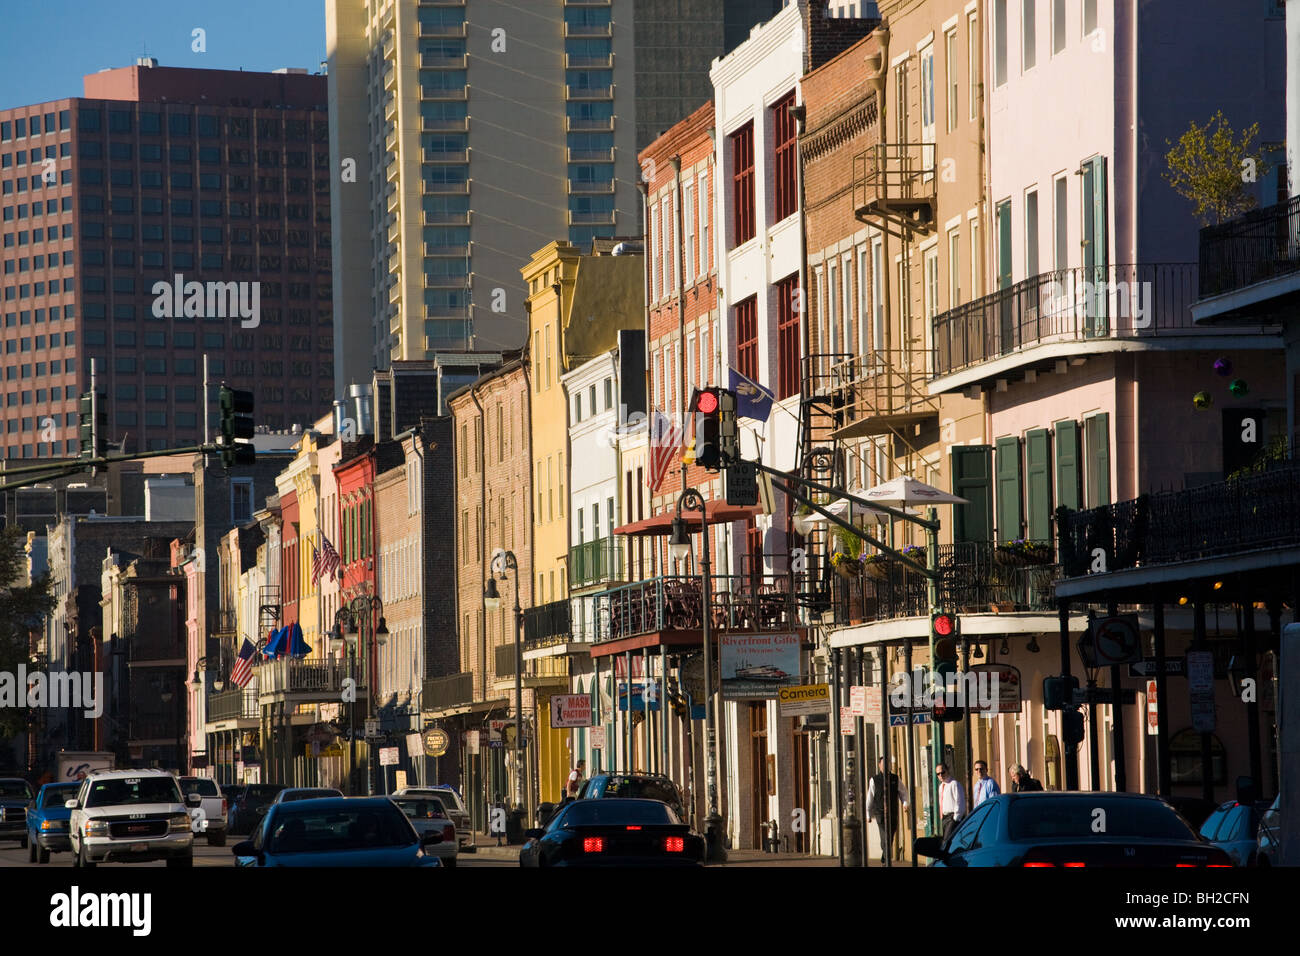 Building facades on Decatur Street French Quarter New Orleans, Louisiana - Stock Image